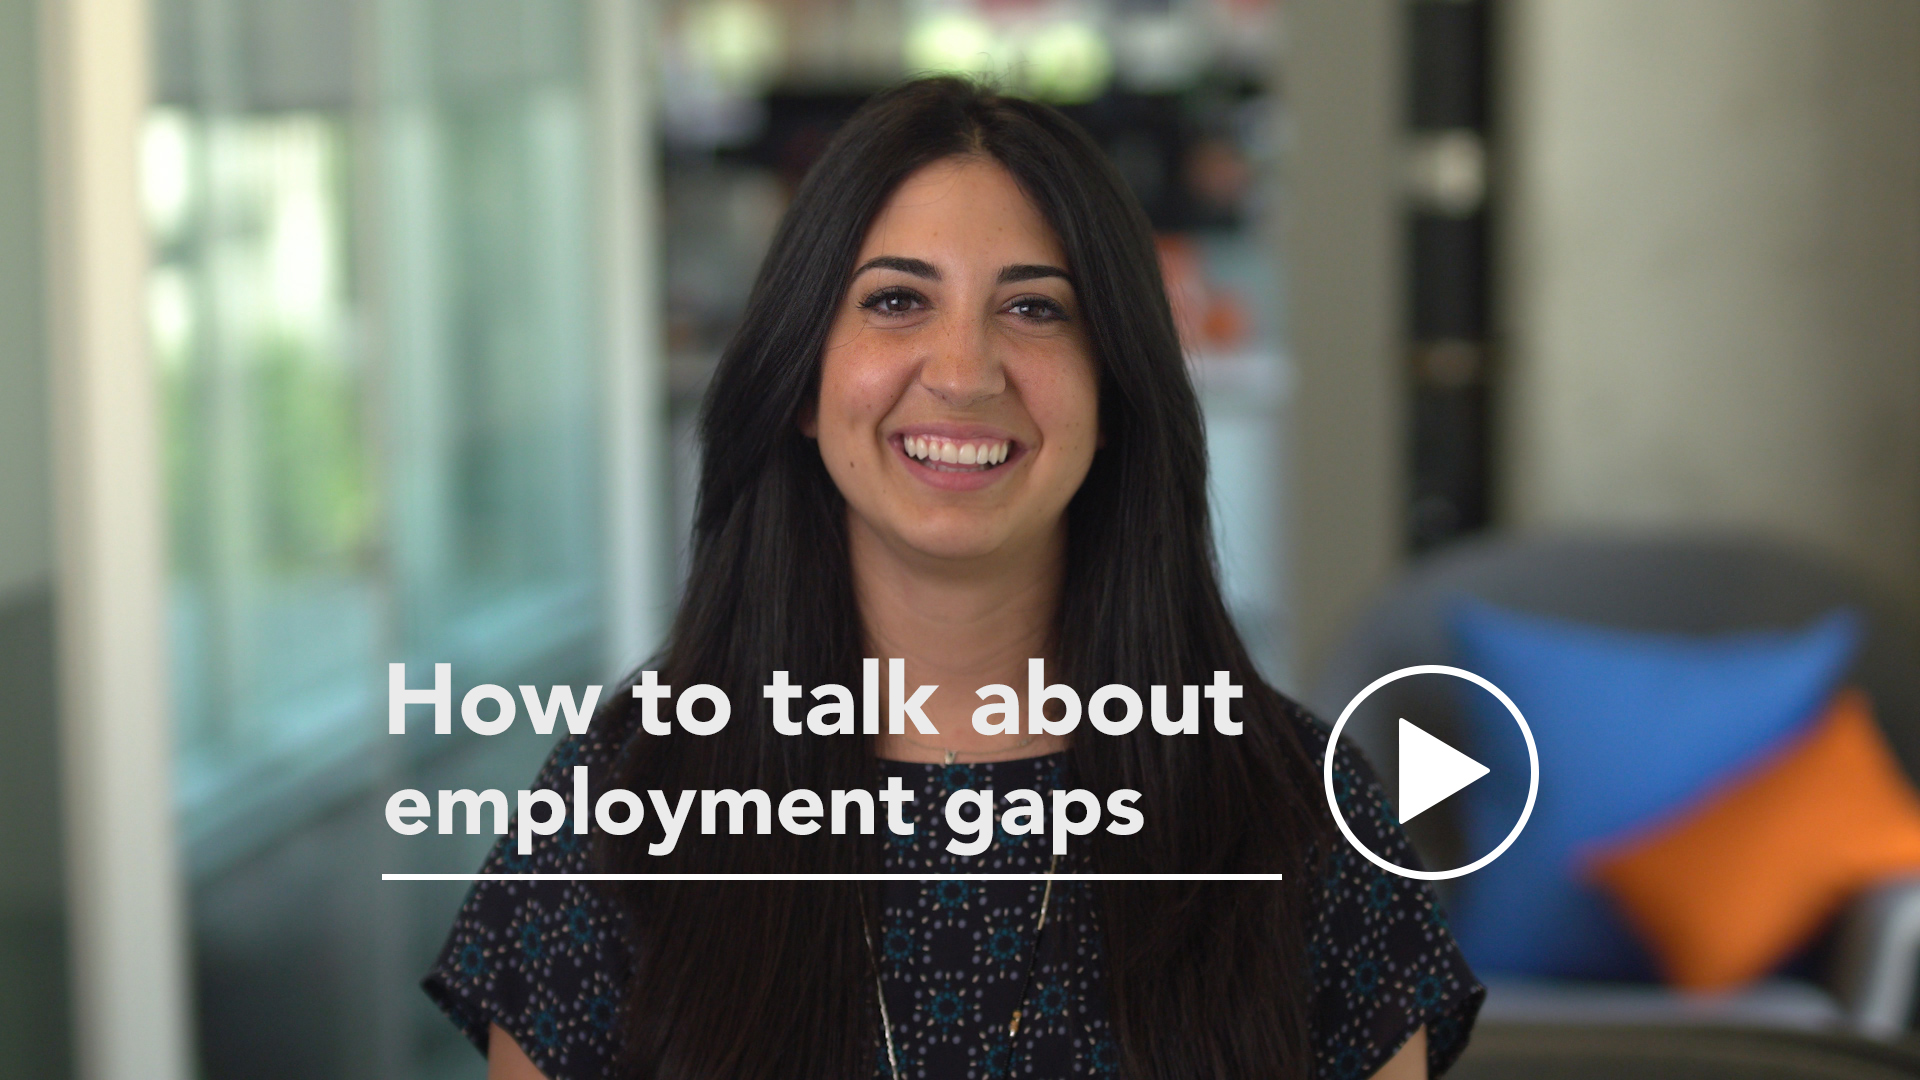 Captivating How To Explain Employment Gaps In An Interview | Indeed.com